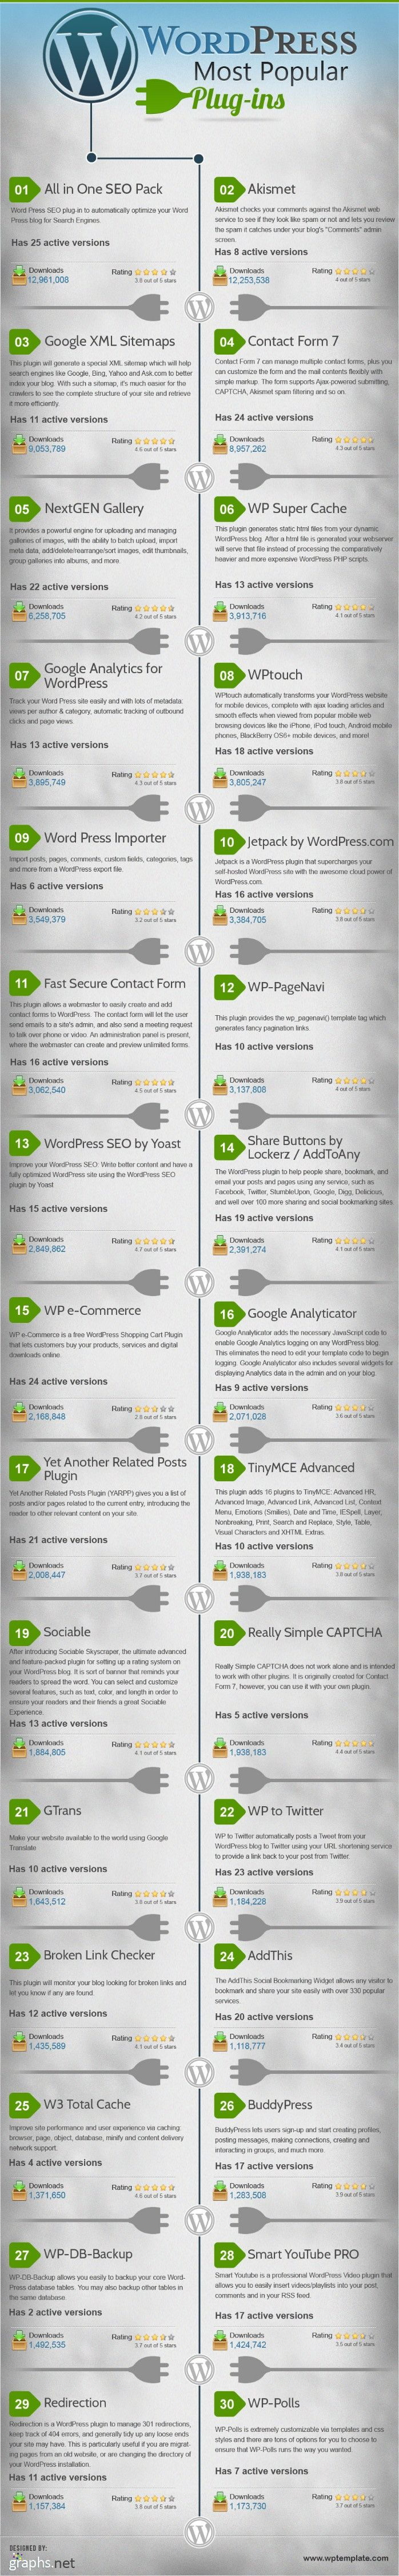 30 Popular WordPress Plugins – [INFOGRAPHIC] - Influence Social Marketing   Social Media Marketing, Custom Facebook Fan Pages and WordPress Consultant   Dennis J. Smith is located in Boise, Idaho